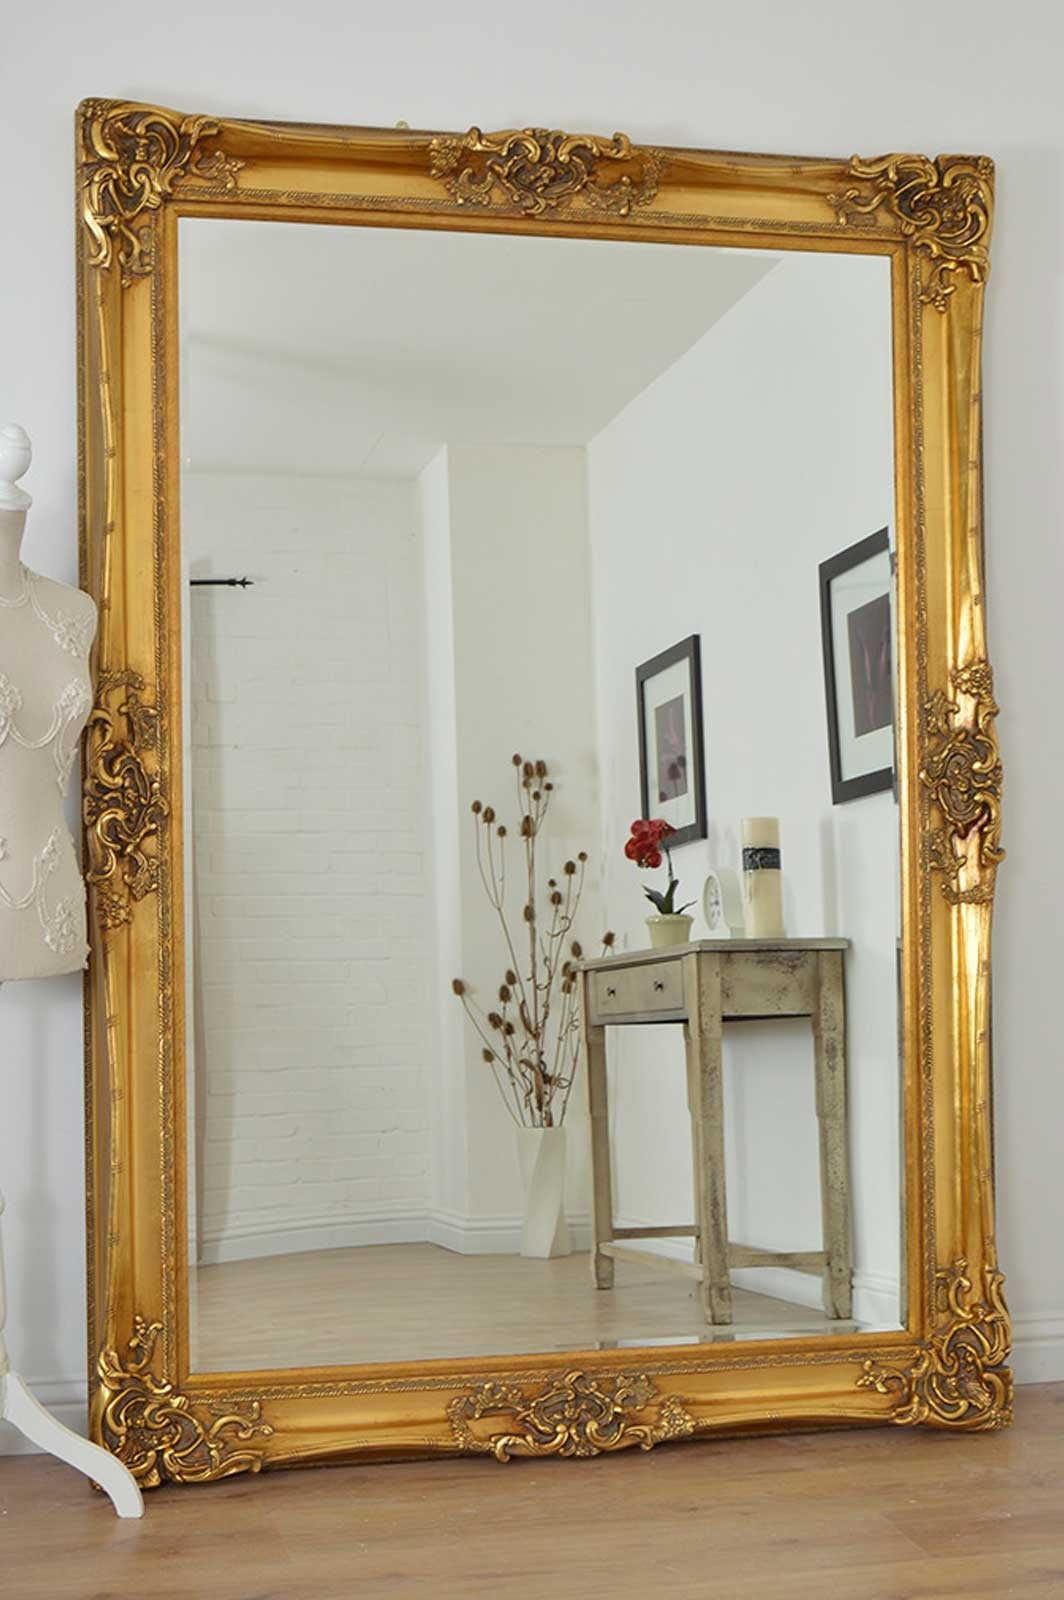 Large Gold Very Ornate Antique Design Wall Mirror 7ft X 5ft 213cm With Regard To Antique Large Mirrors (Image 15 of 15)